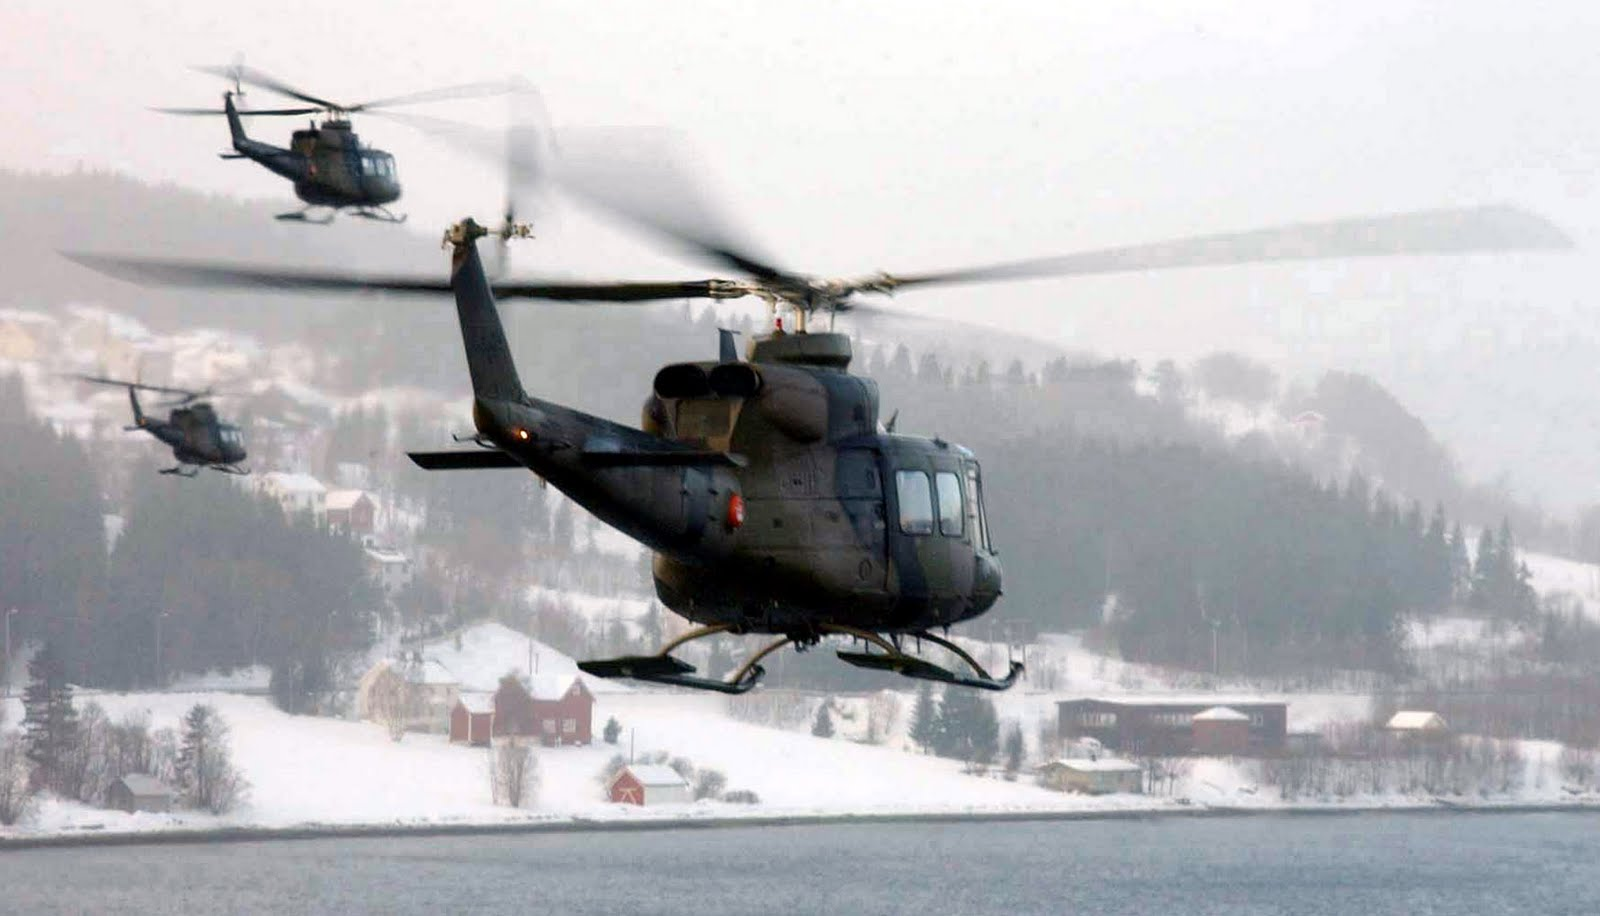 Bell 412 Helicopter by cool wallpapers 1600x916